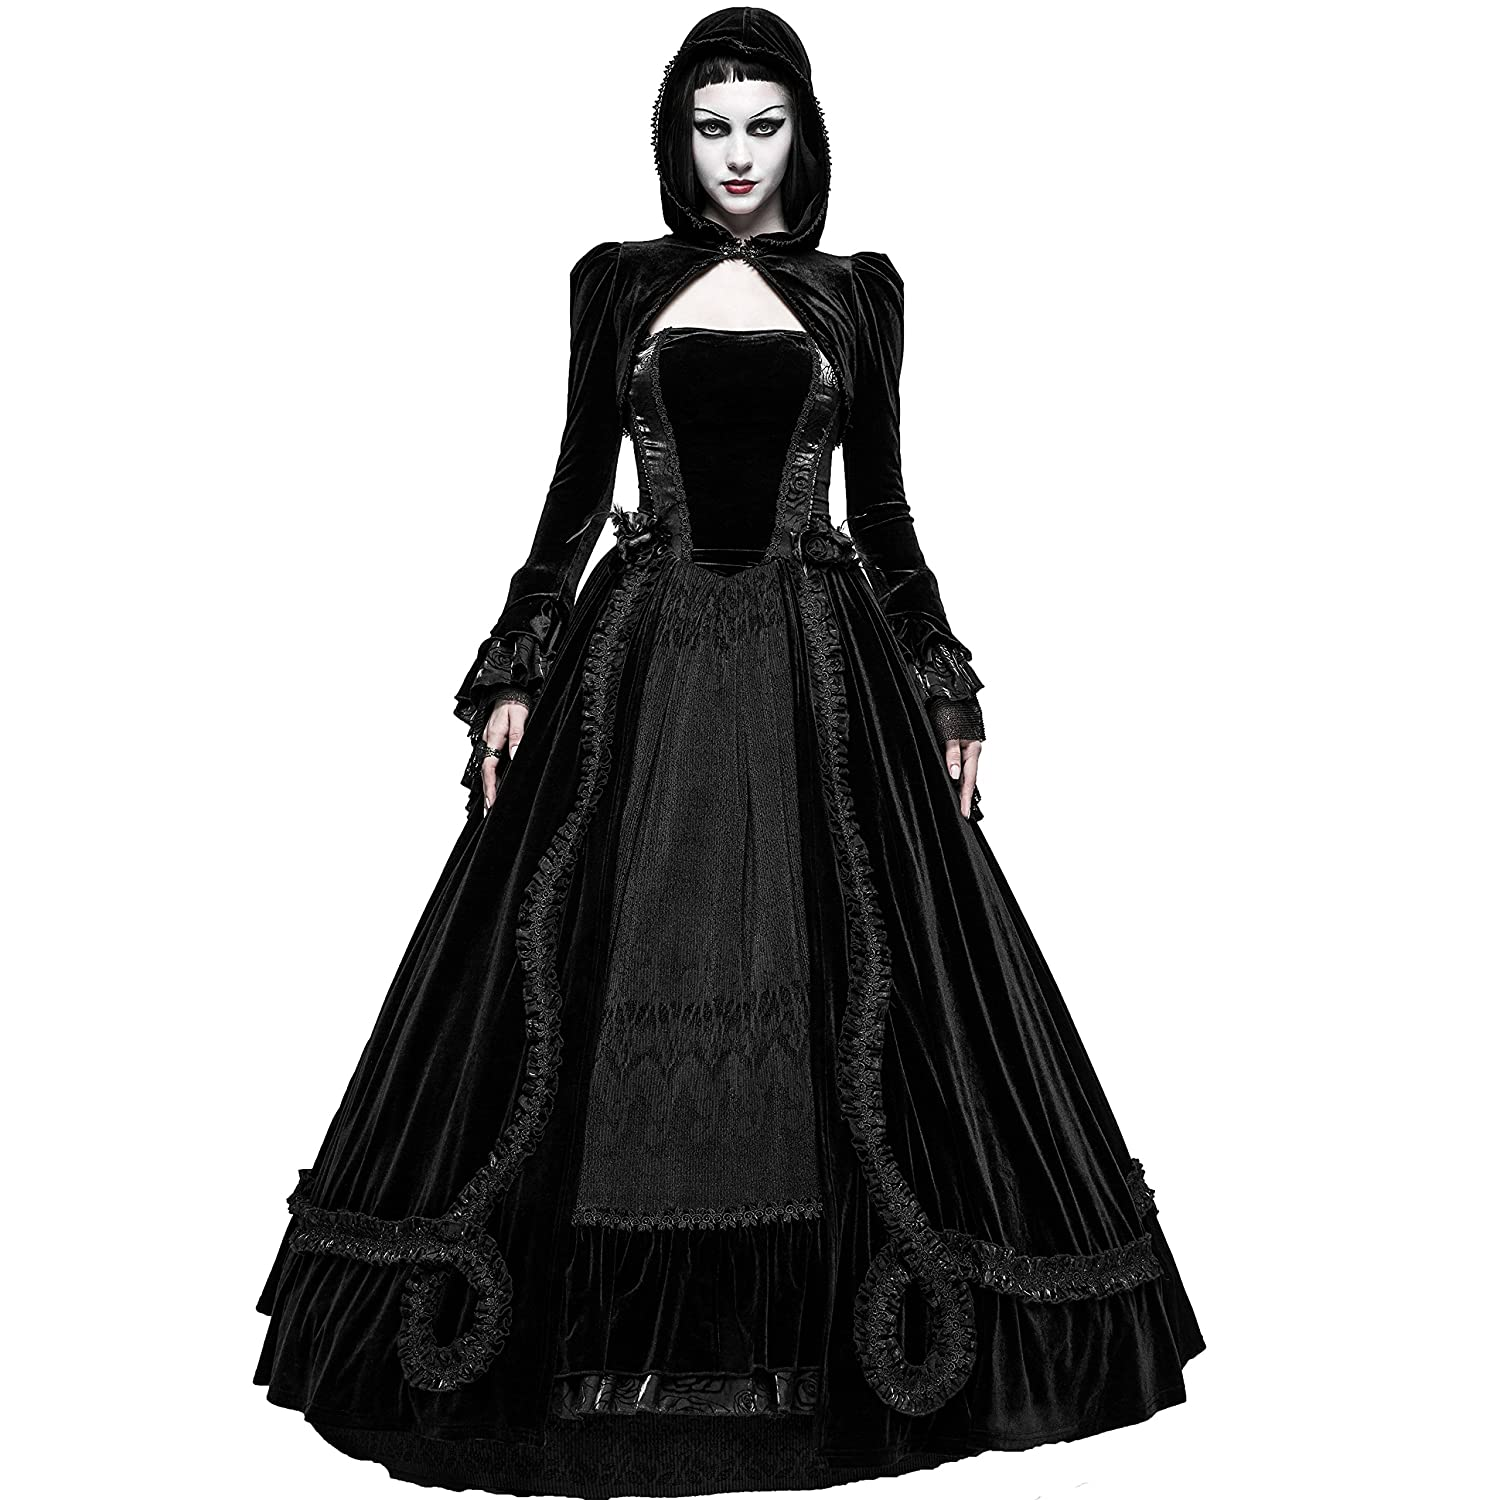 Punk Rave Black Romantic Gothic Ball Gown Long Dress (Small) at ...